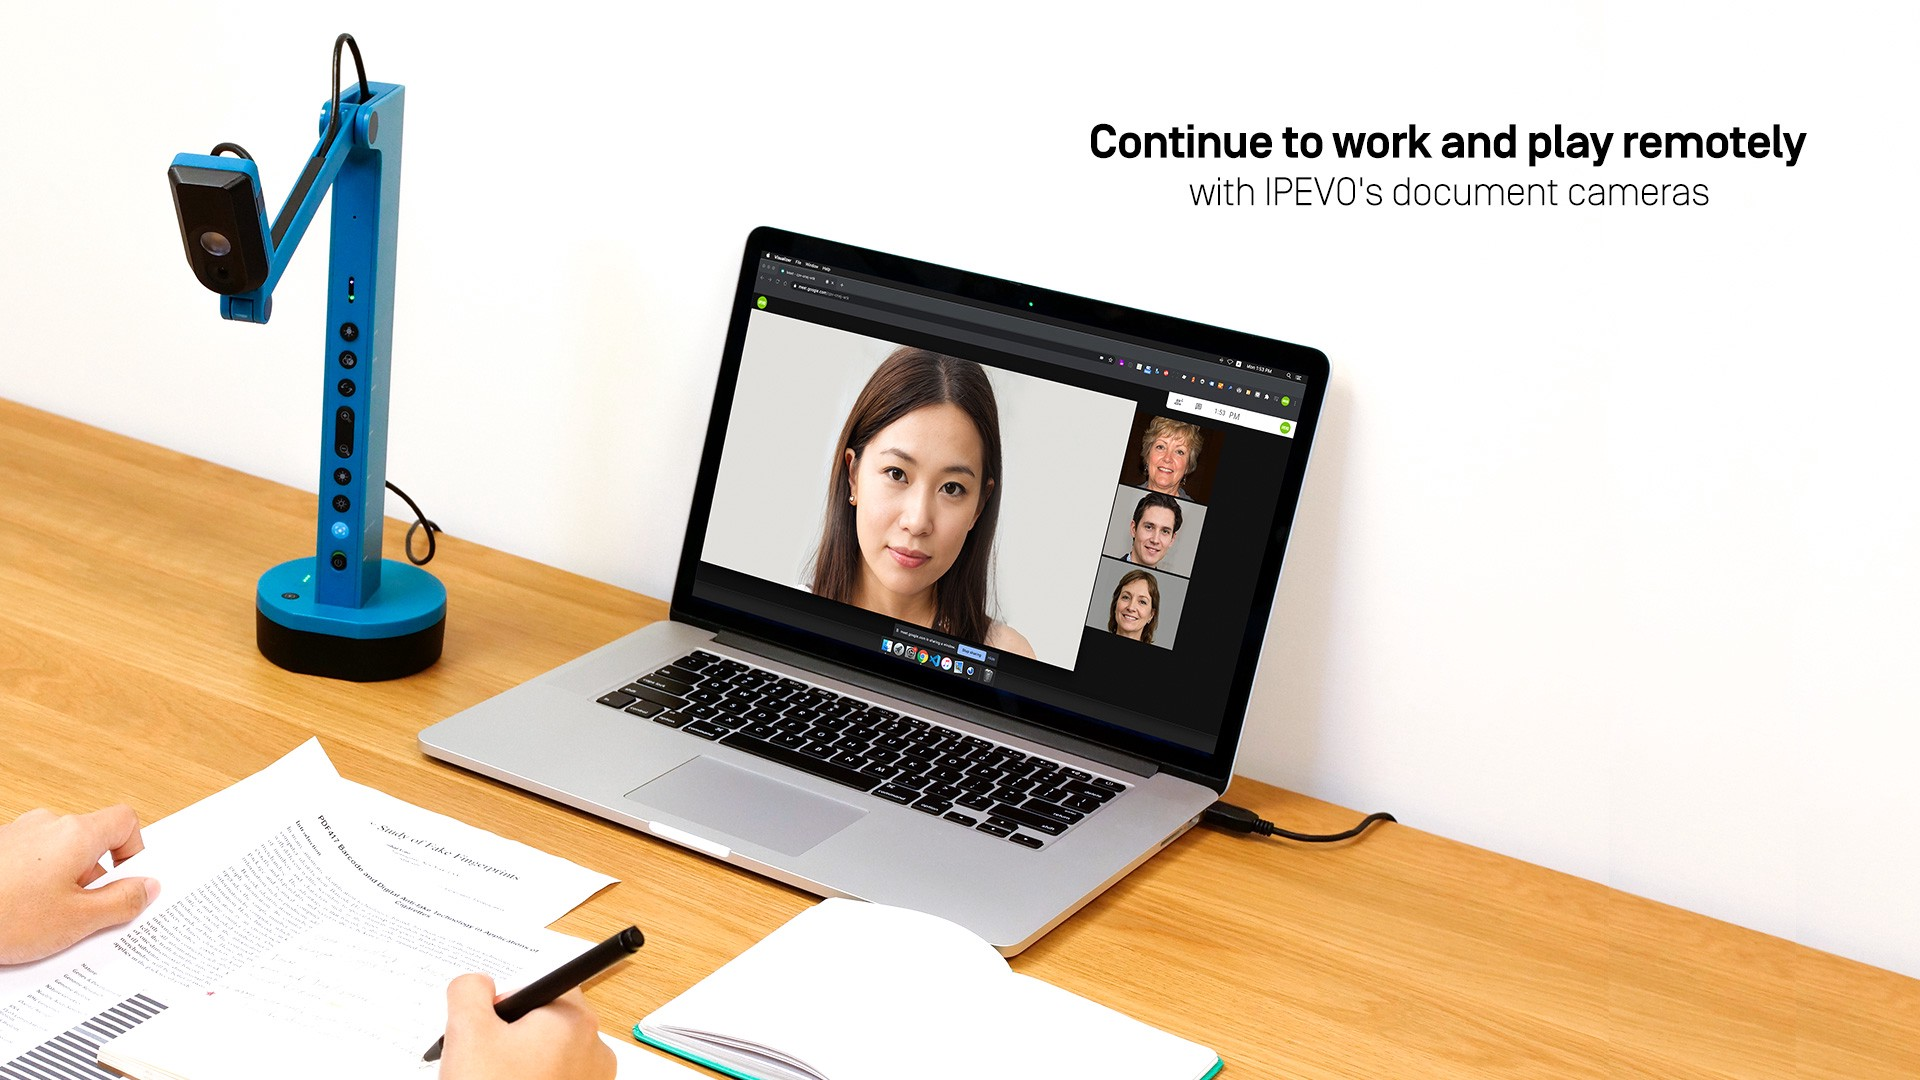 Continue to work and play remotely with IPEVO's document cameras